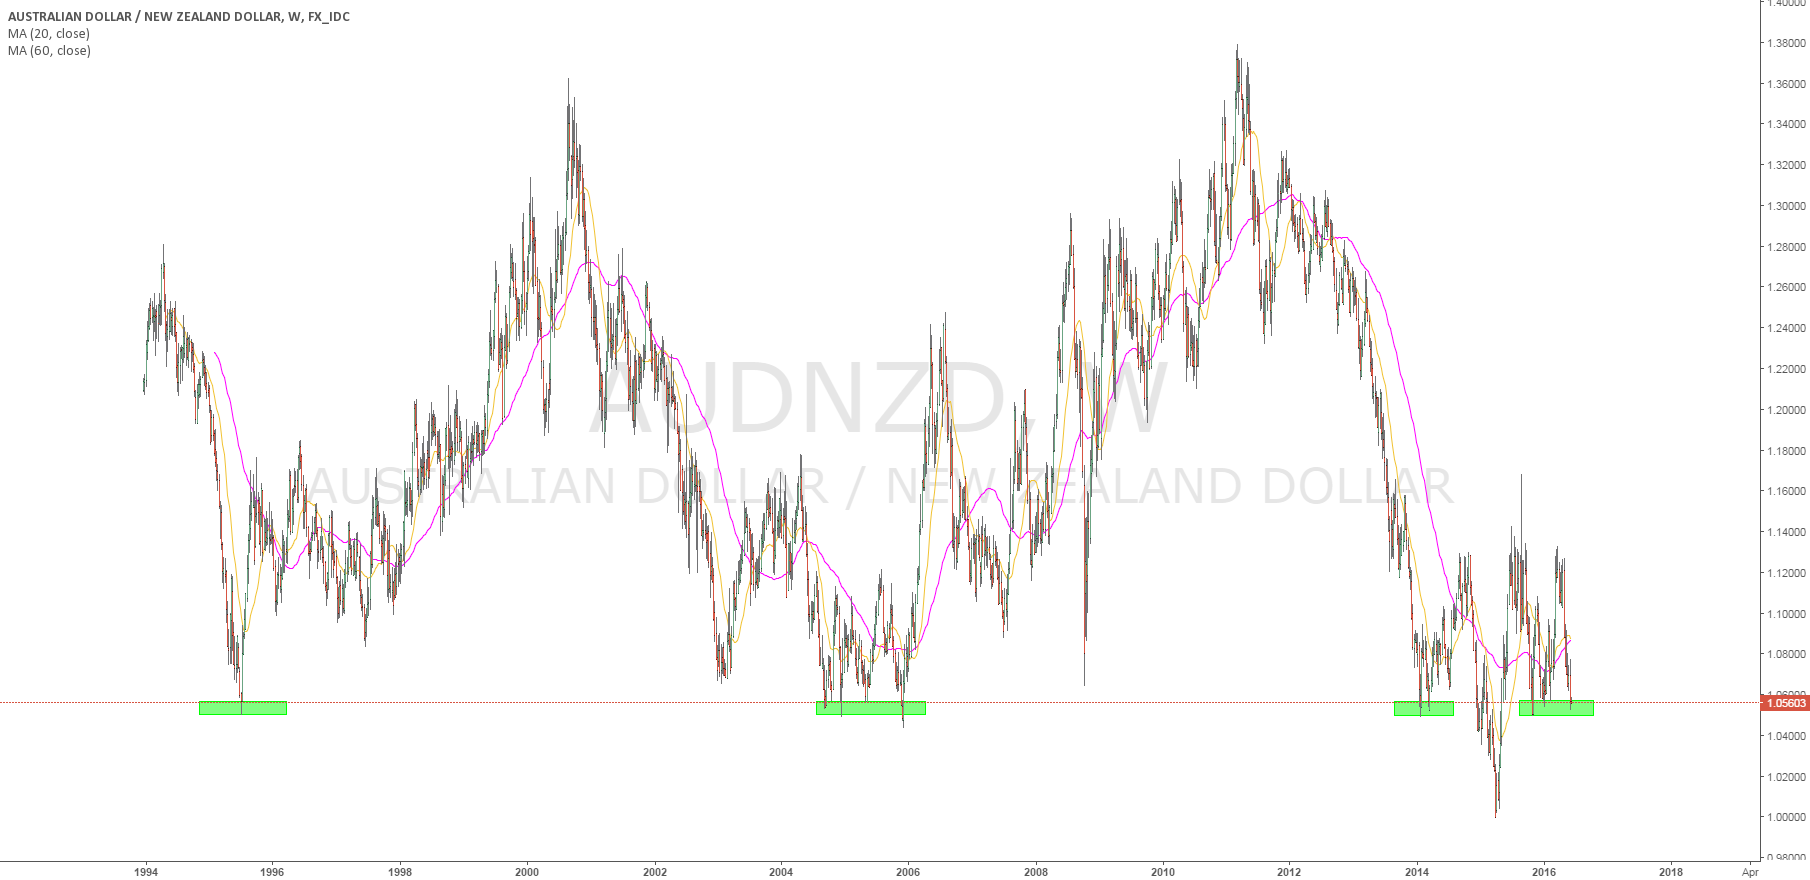 audnzd at 1.05 level last 20 year